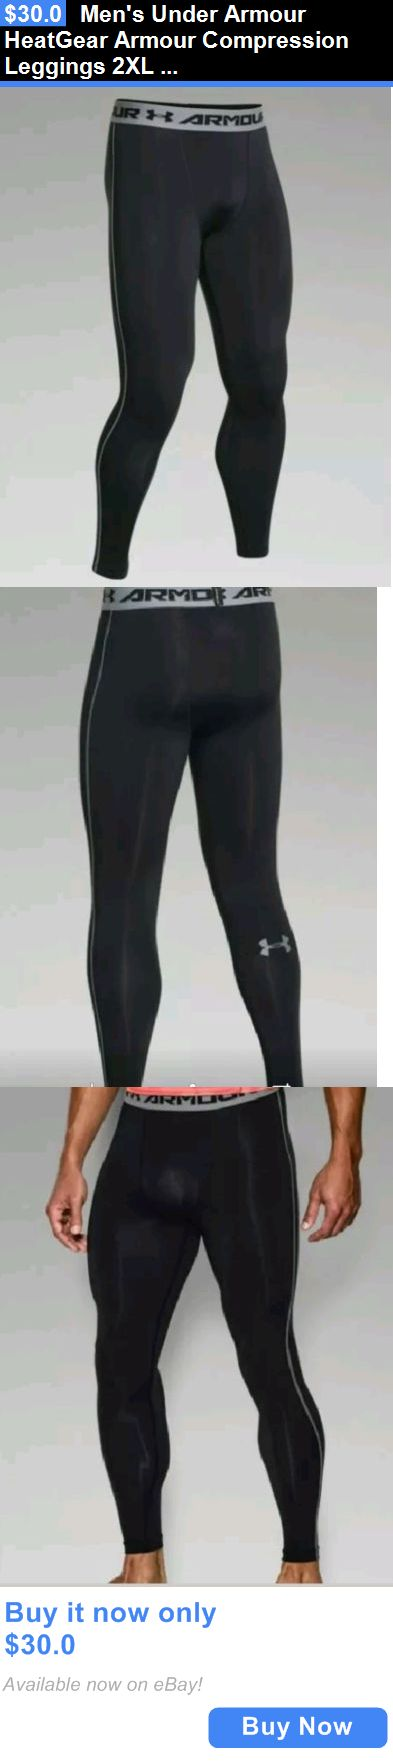 Men Athletics: Mens Under Armour Heatgear Armour Compression Leggings 2Xl Xxl 1257474 001 Nwt! BUY IT NOW ONLY: $30.0